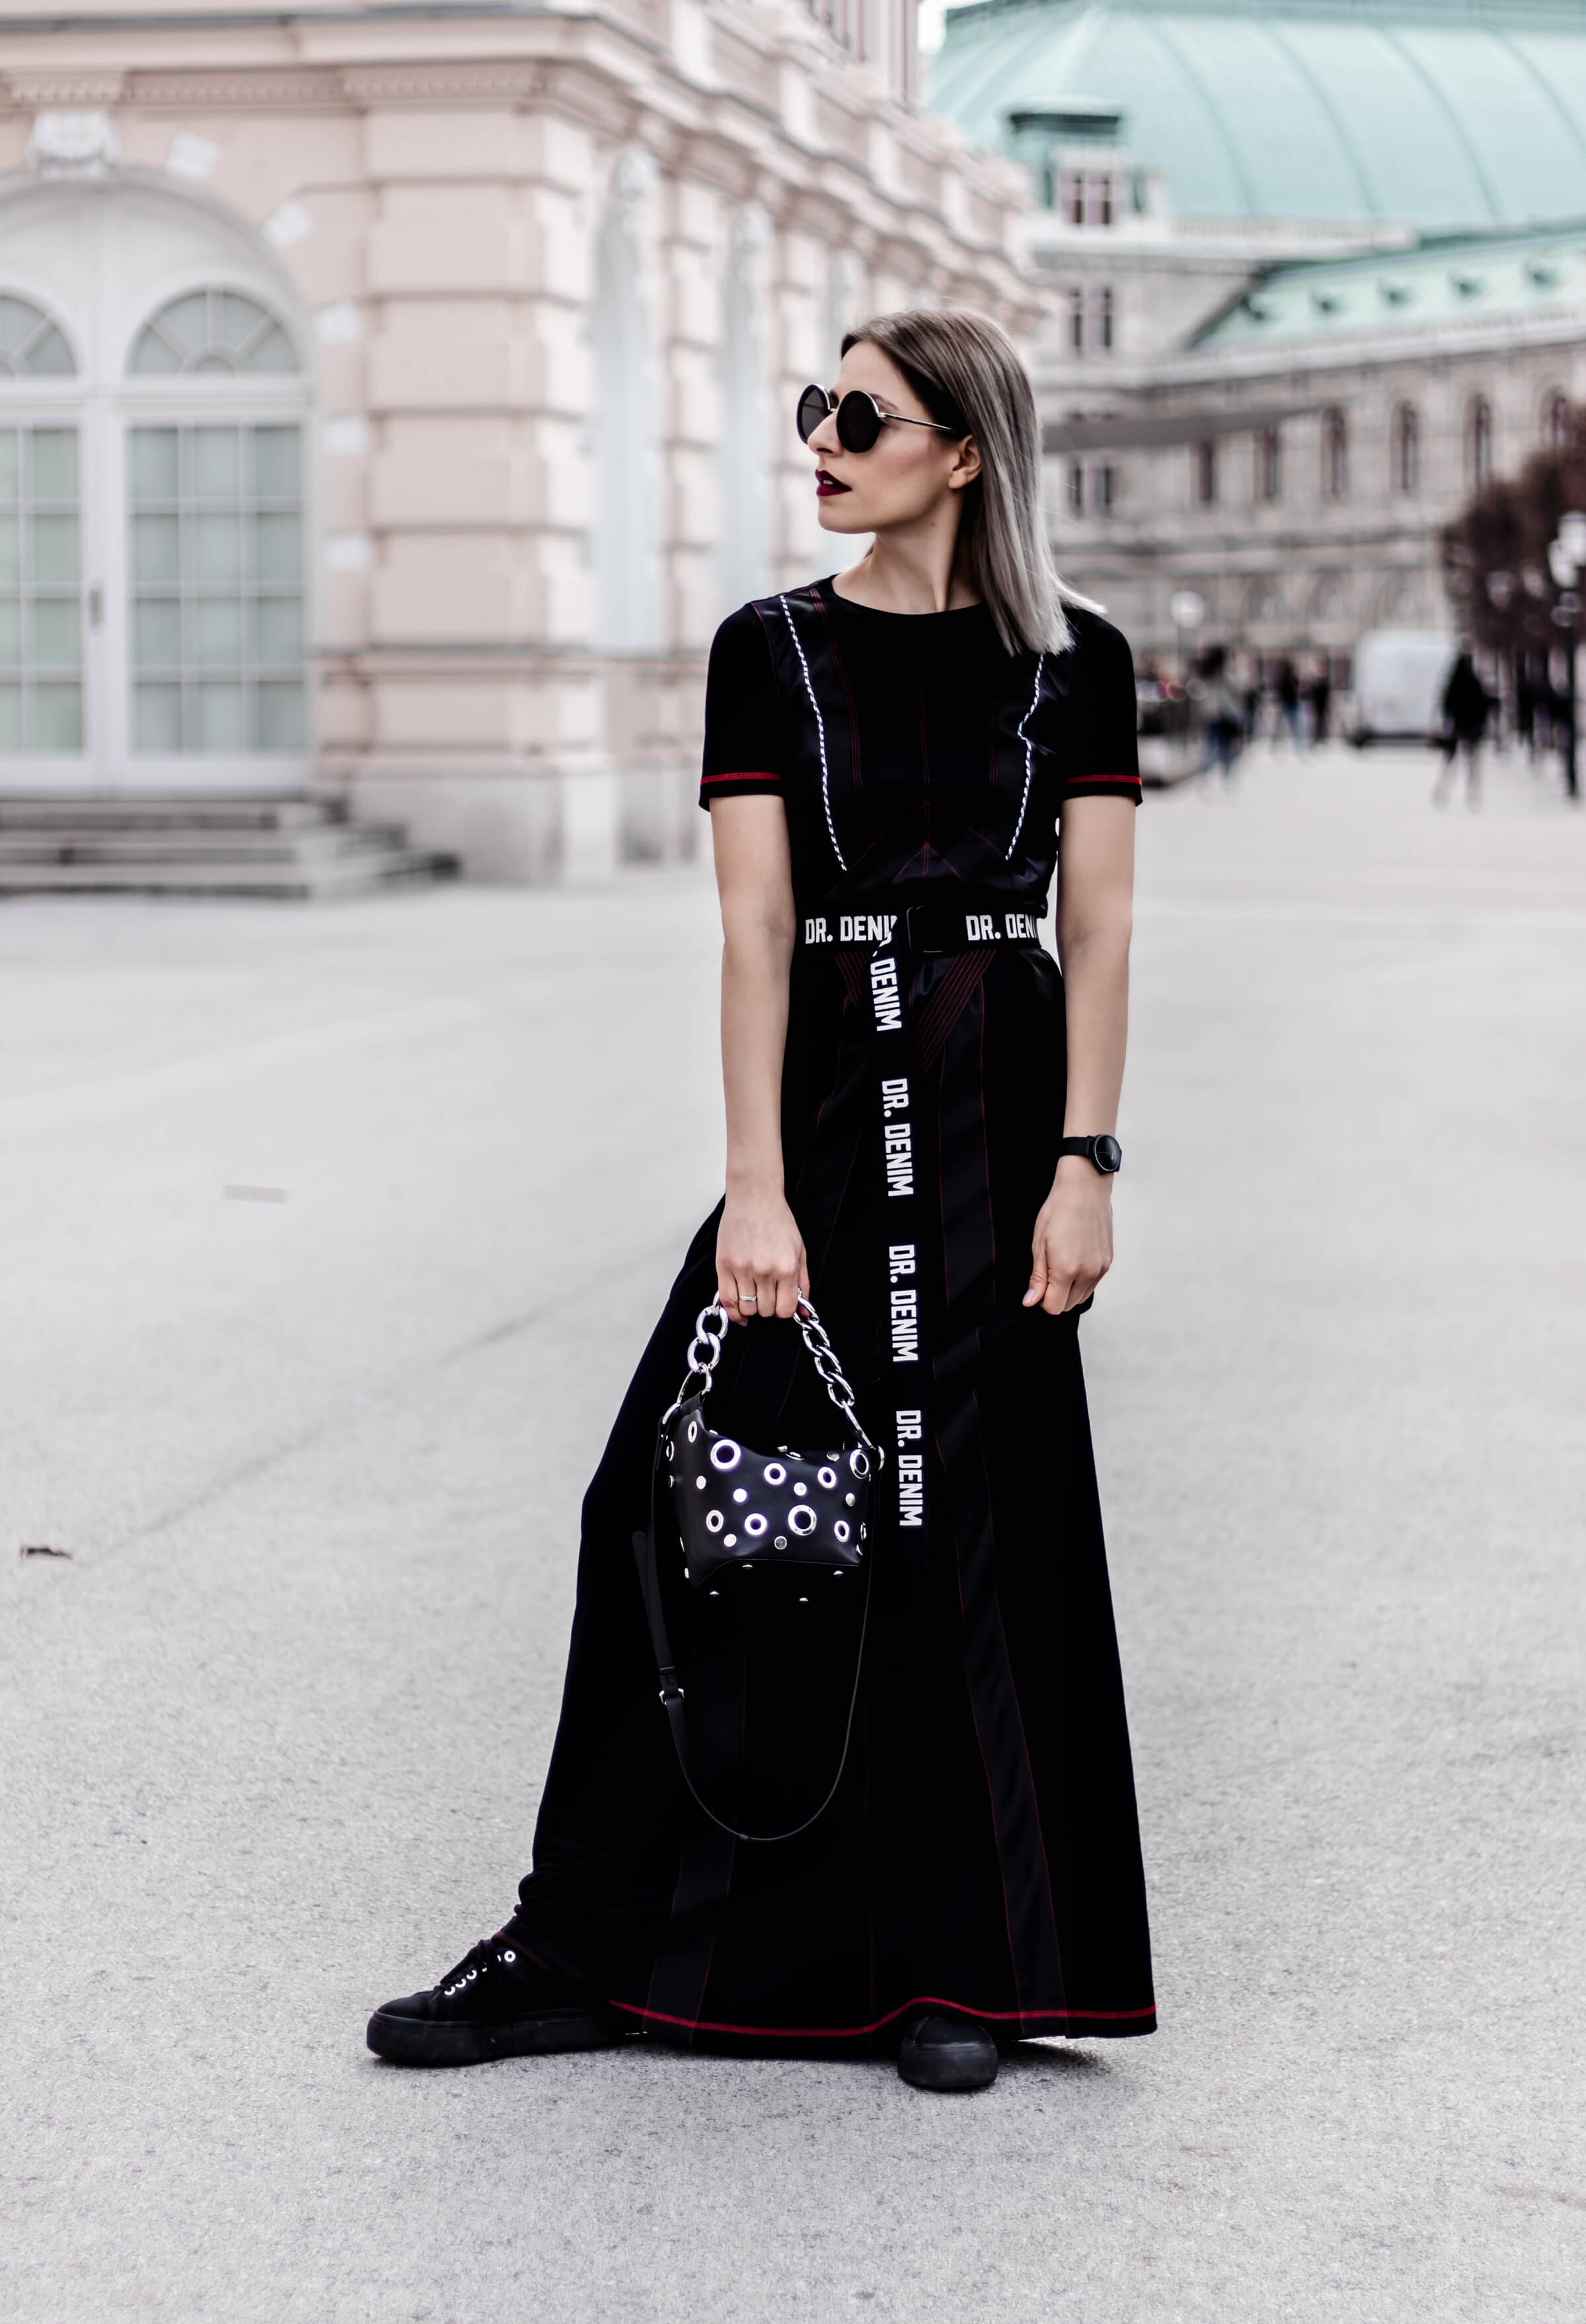 How to Wear a Black Dress